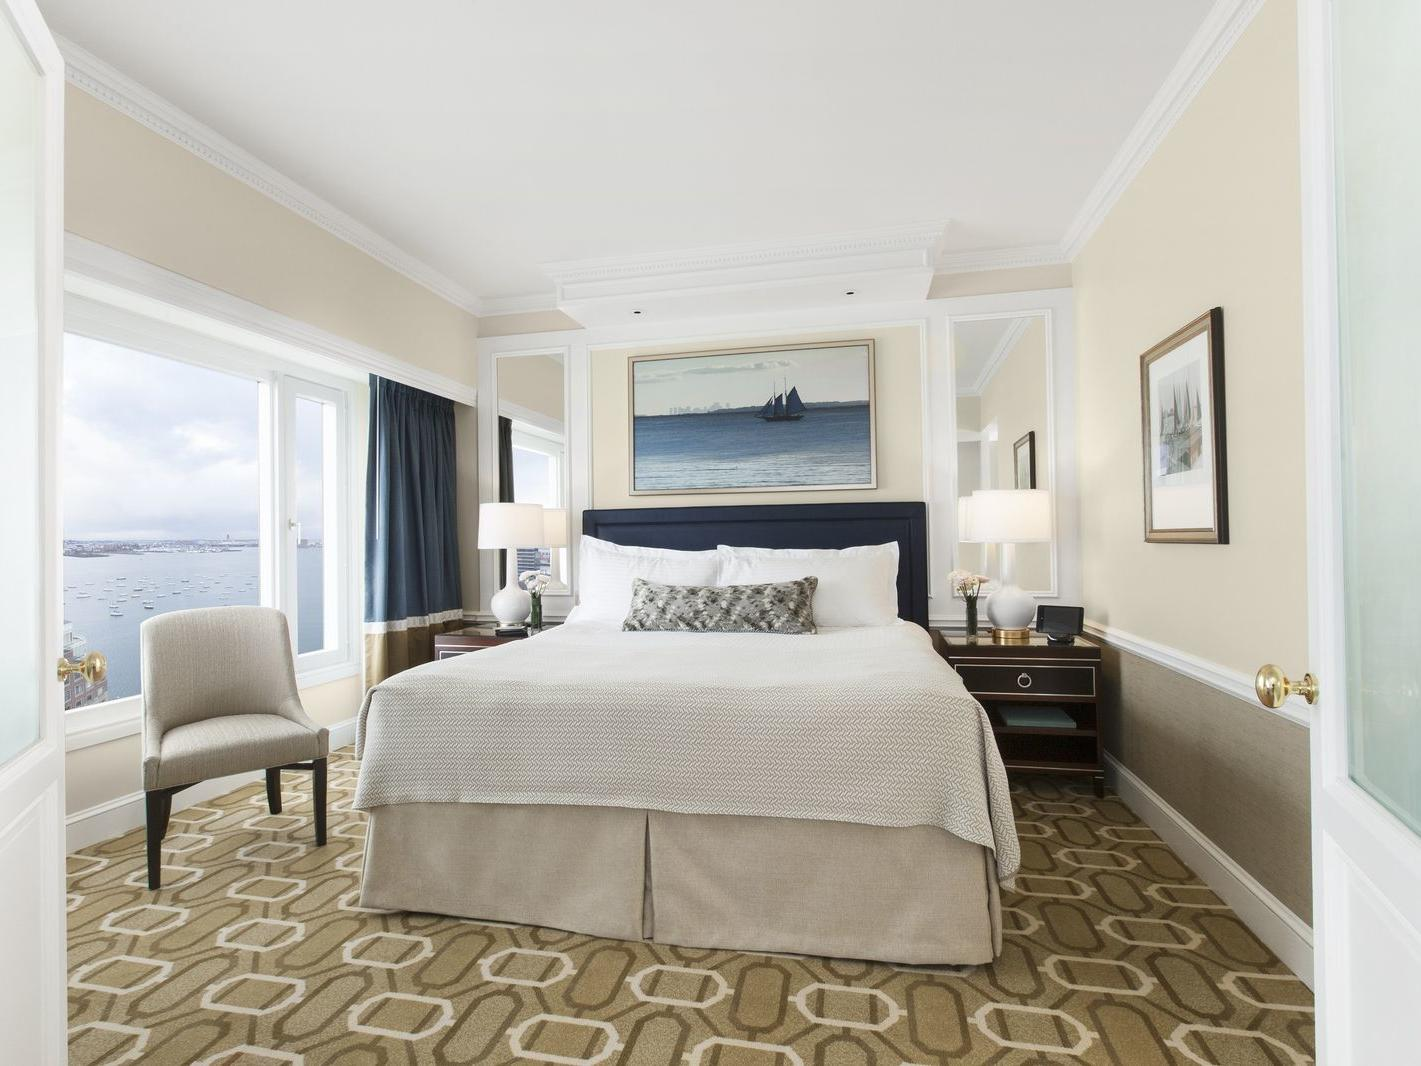 Guest bedroom with harbor view